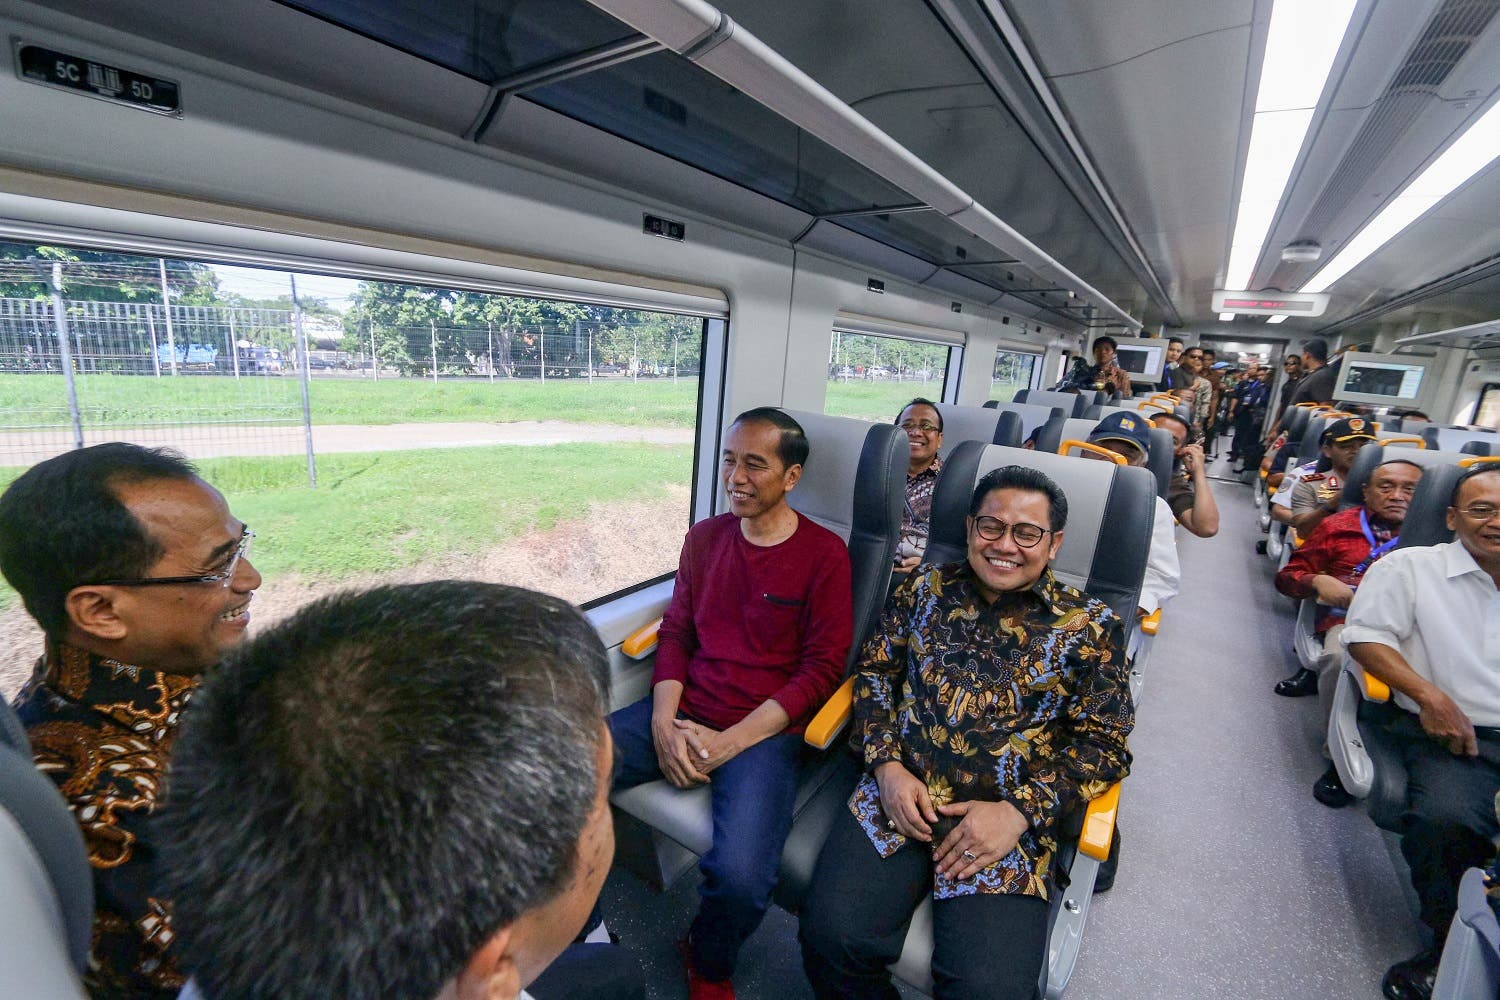 Indonesia's President Joko Widodo (3rd L) sits in the newly launched airport train along the train line linking Soekarno-Hatta International Airport to the city centre in Tangerang, on the outskirts of Jakarta, on January 2, 2018. Jakarta launched the first train connecting its international airport to the city centre on January 2 as the sprawling Indonesian capital moves to tackle the gridlock that can make the trip an hours-long headache. (AFP)